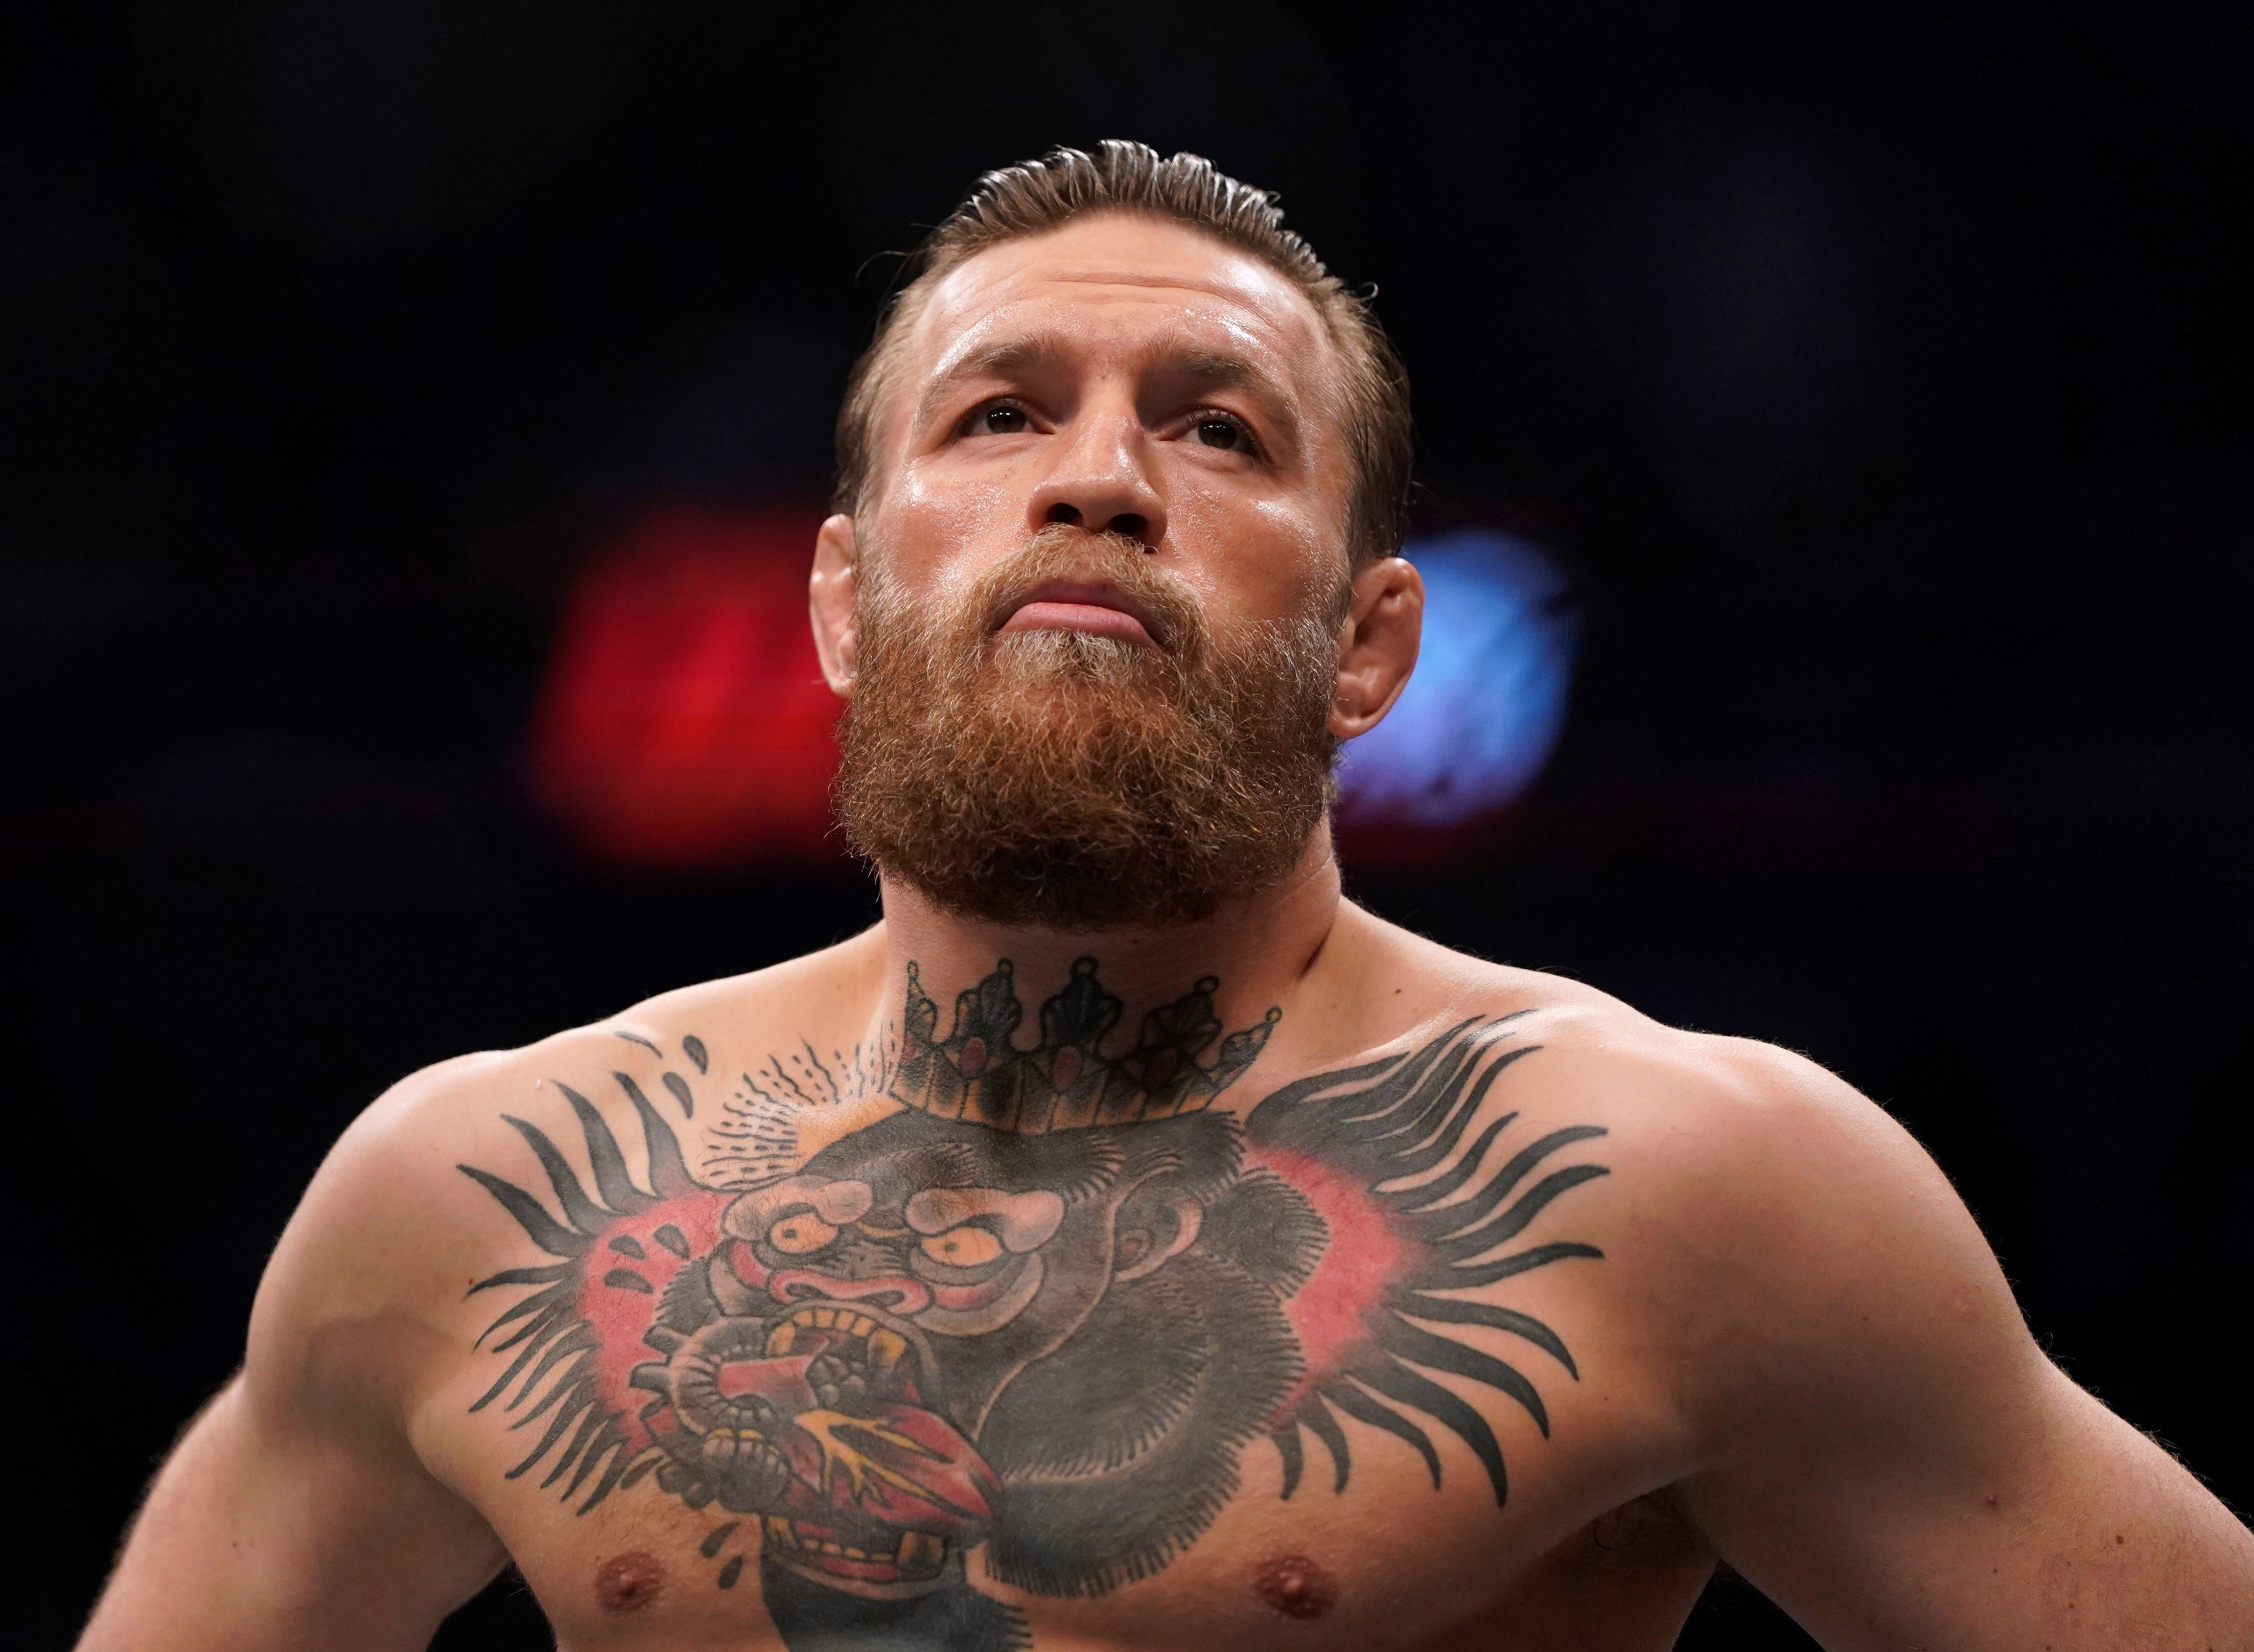 MMA Mixed Martial Arts - UFC 246 - Welterweight - Conor McGregor v Donald Cerrone - T-Mobile Arena, Las Vegas, United States - January 18, 2020  Conor McGregor before his fight against Donald Cerrone  REUTERS/Mike Blake